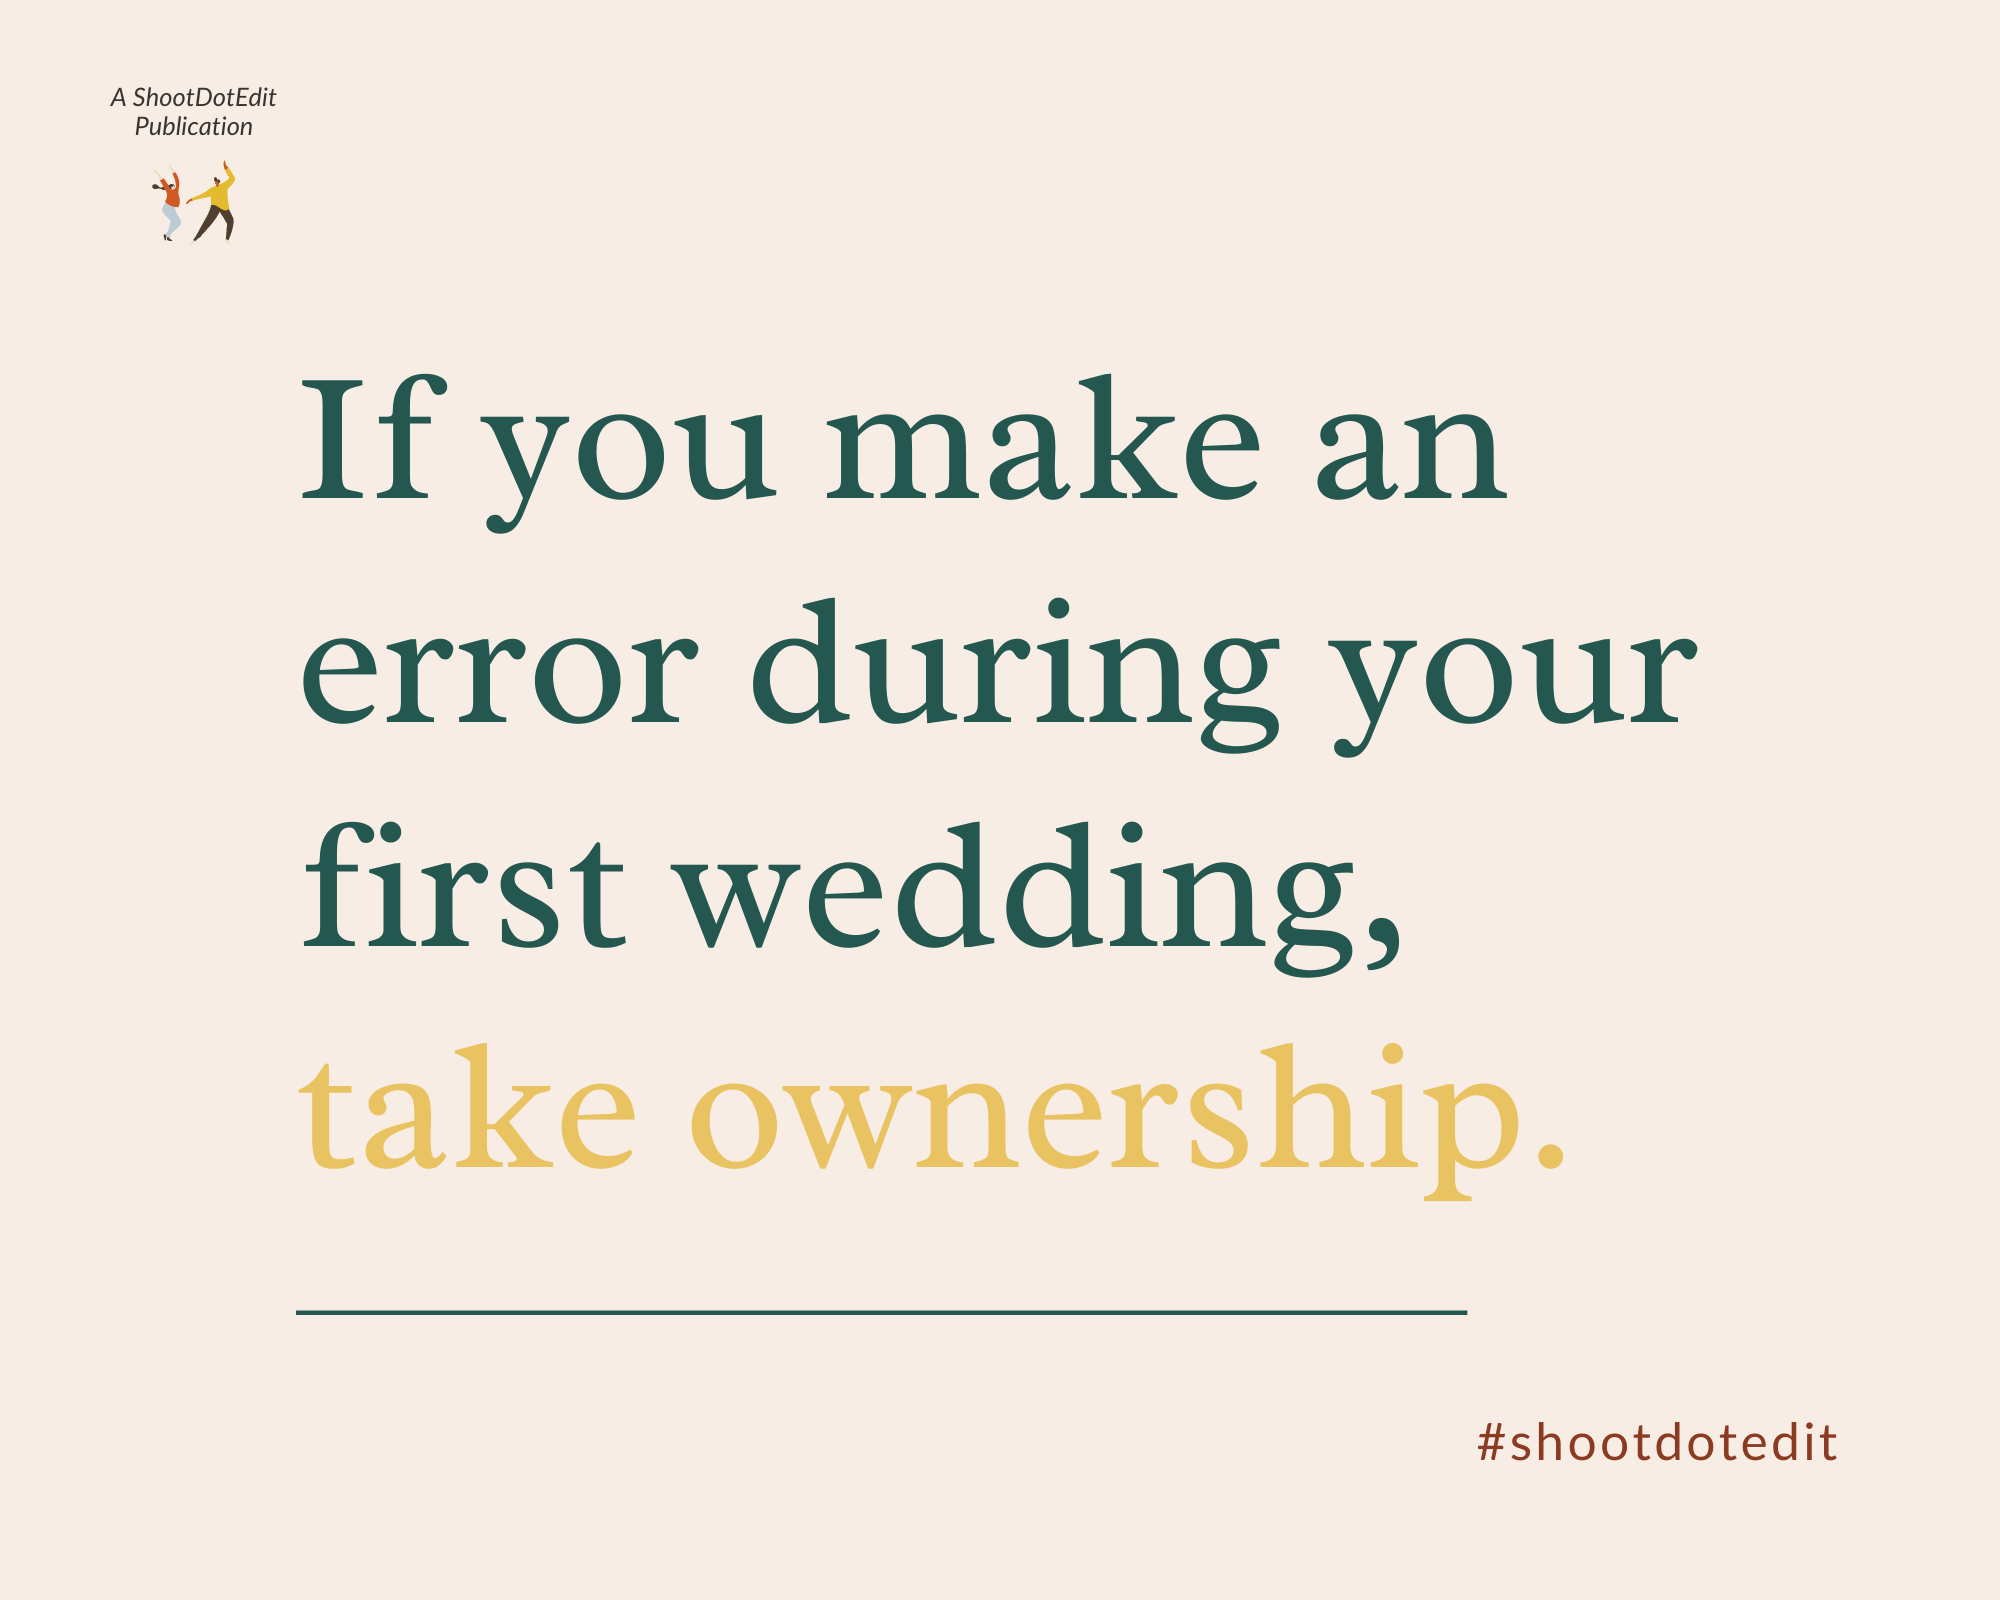 Infographic stating if you make an error during your first wedding, take ownership